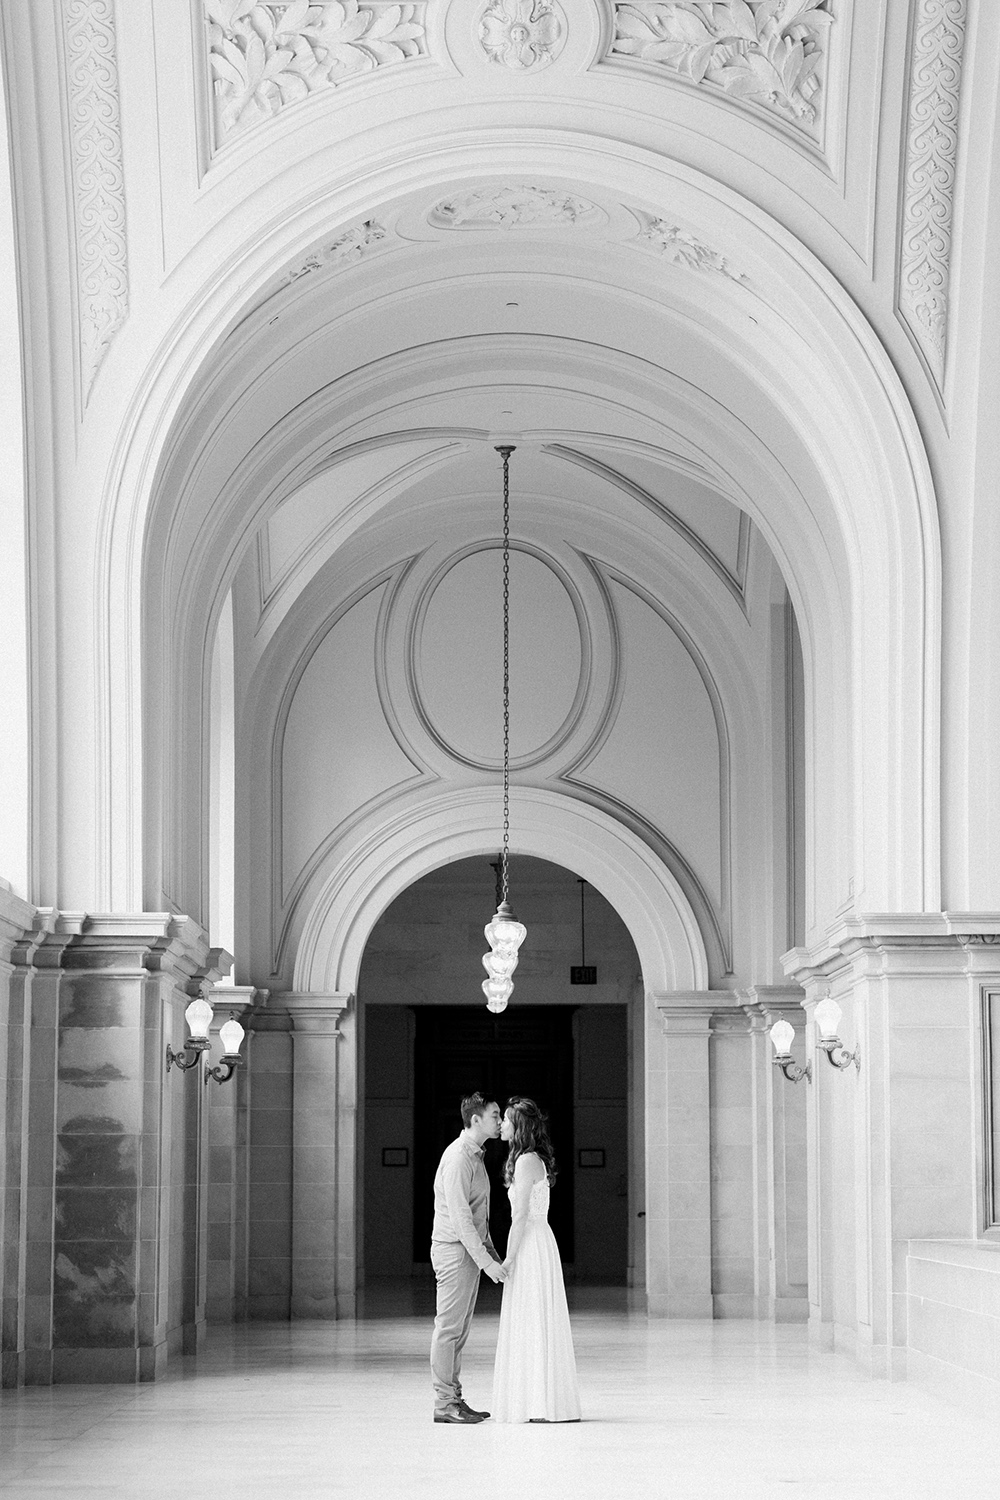 Megan and Michael's engagement session in San Francisco City Hall.